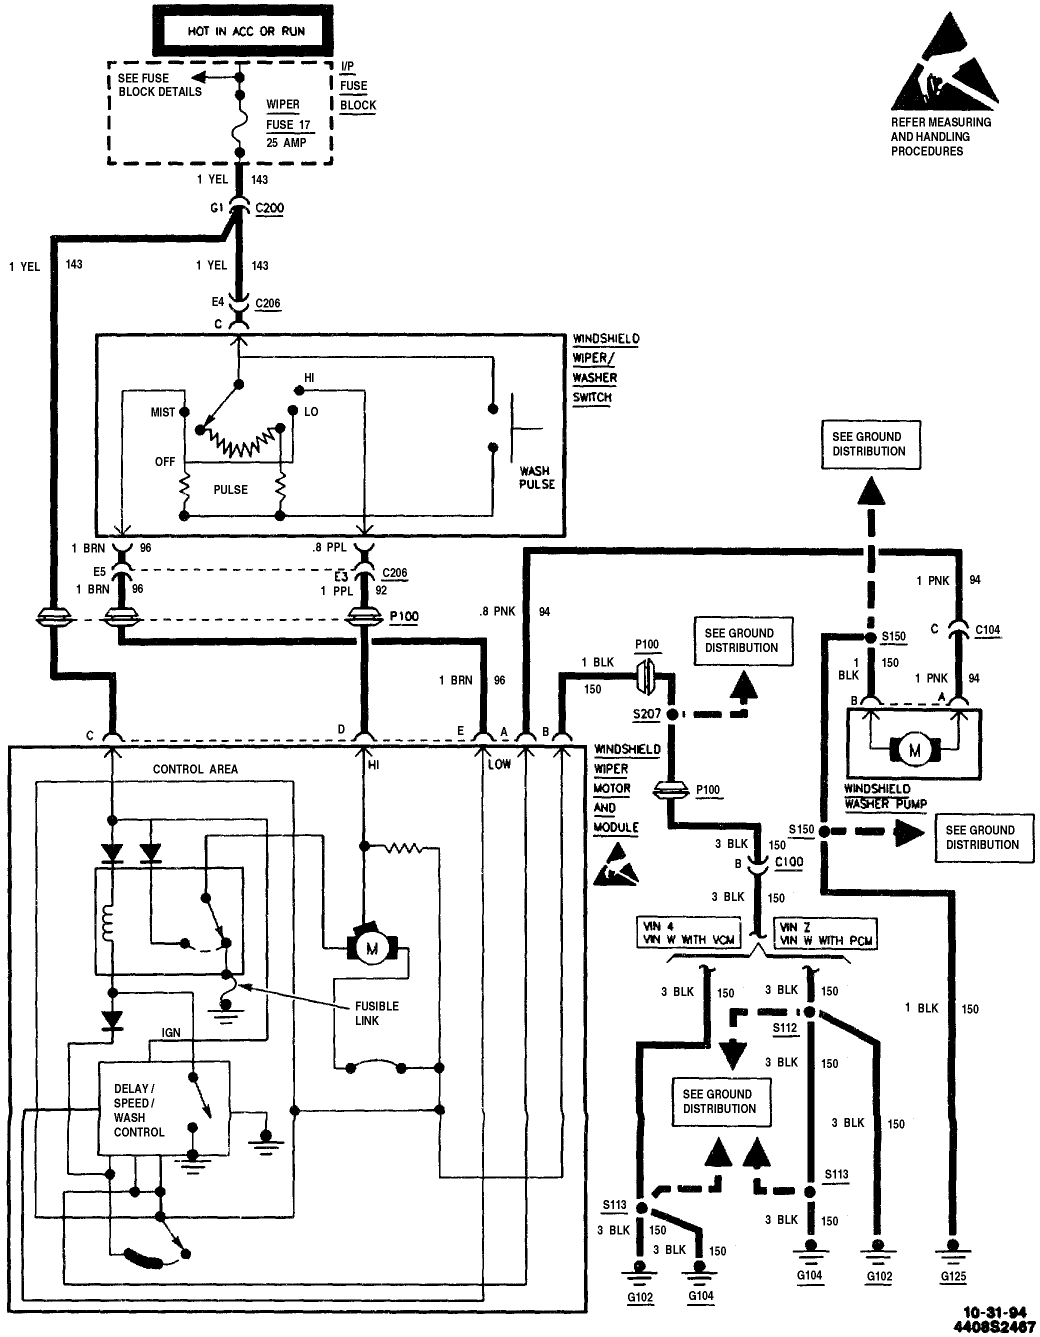 wiper motor wiring diagram i need to the schematic or